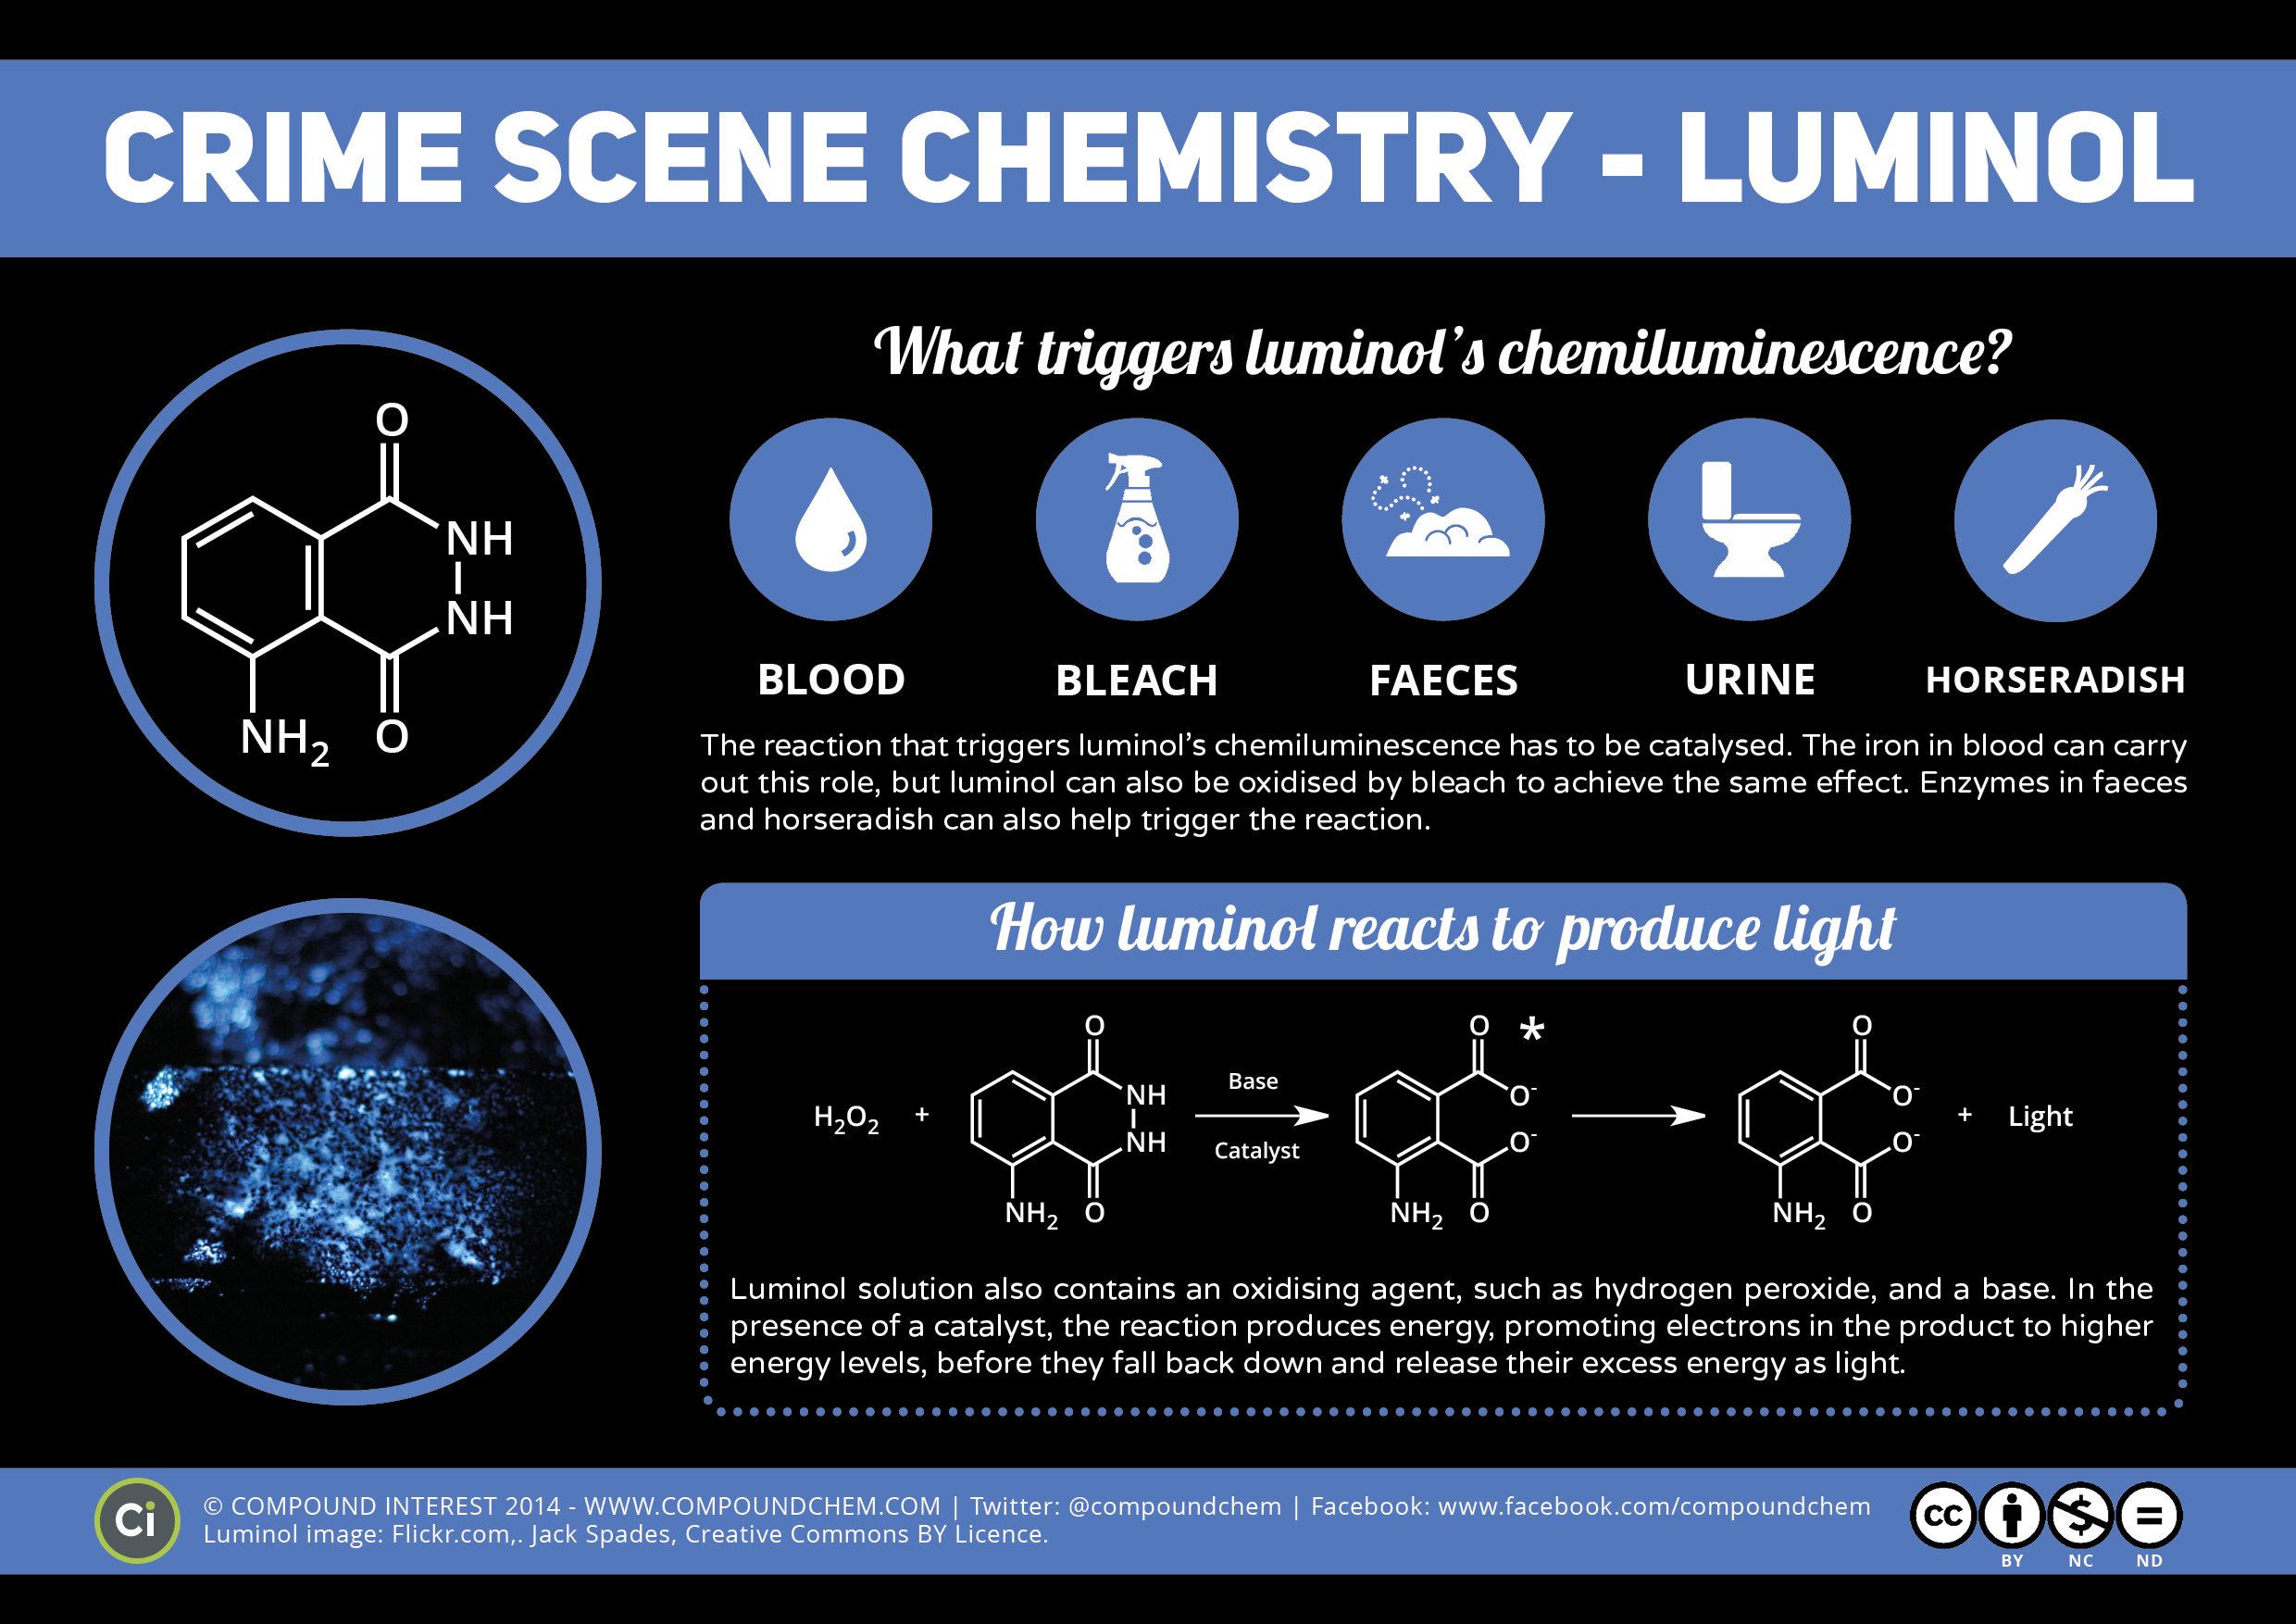 Who discovered luminol